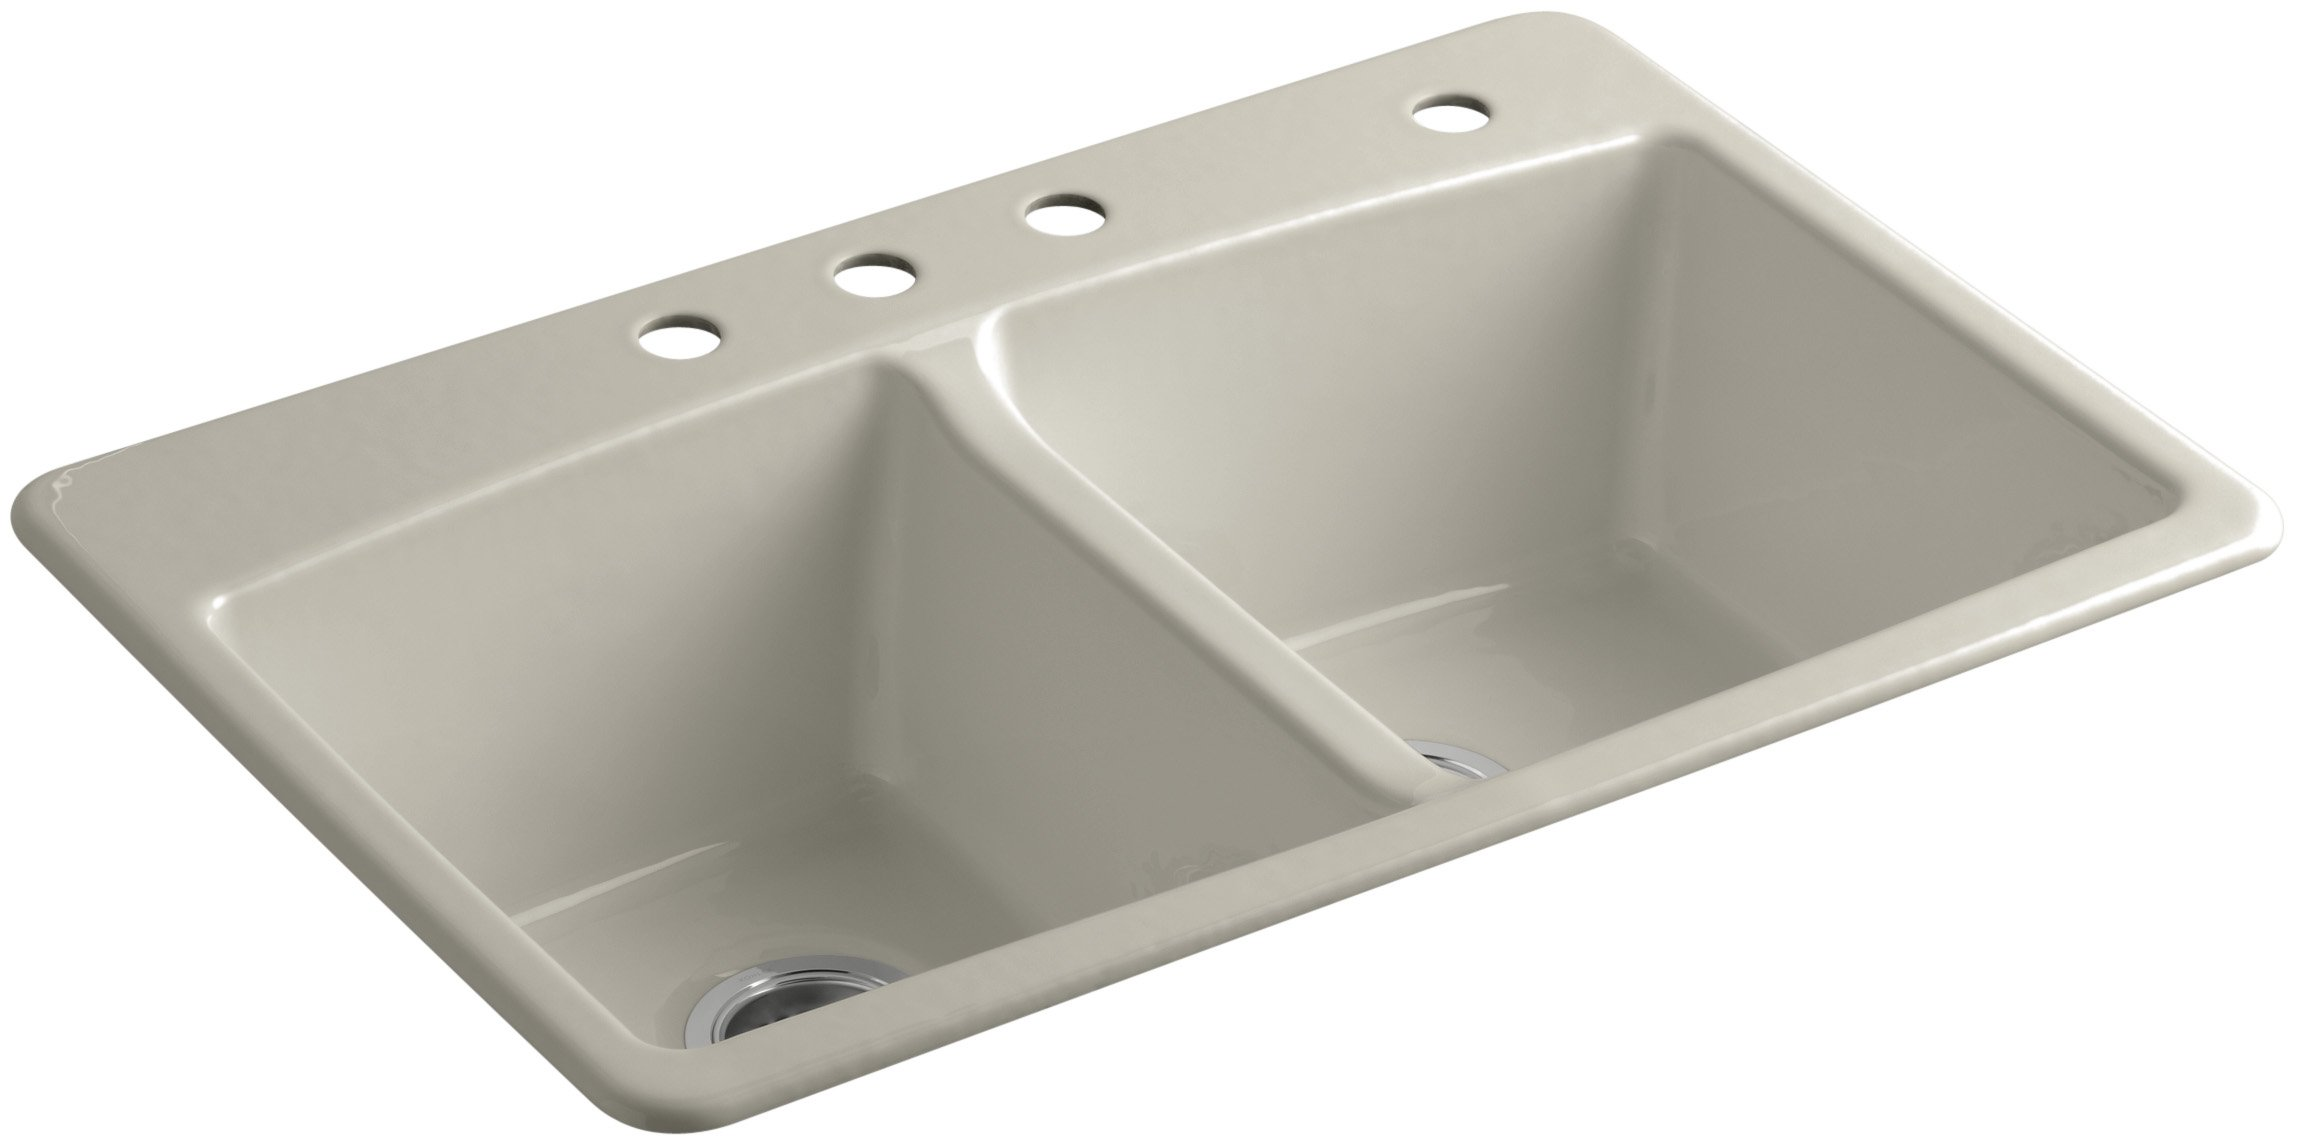 KOHLER K-5846-4-G9 Brookfield 33-Inch x 22-Inch Top-Mount Double-Equal Kitchen Sink with Four Faucet Holes, Sandbar